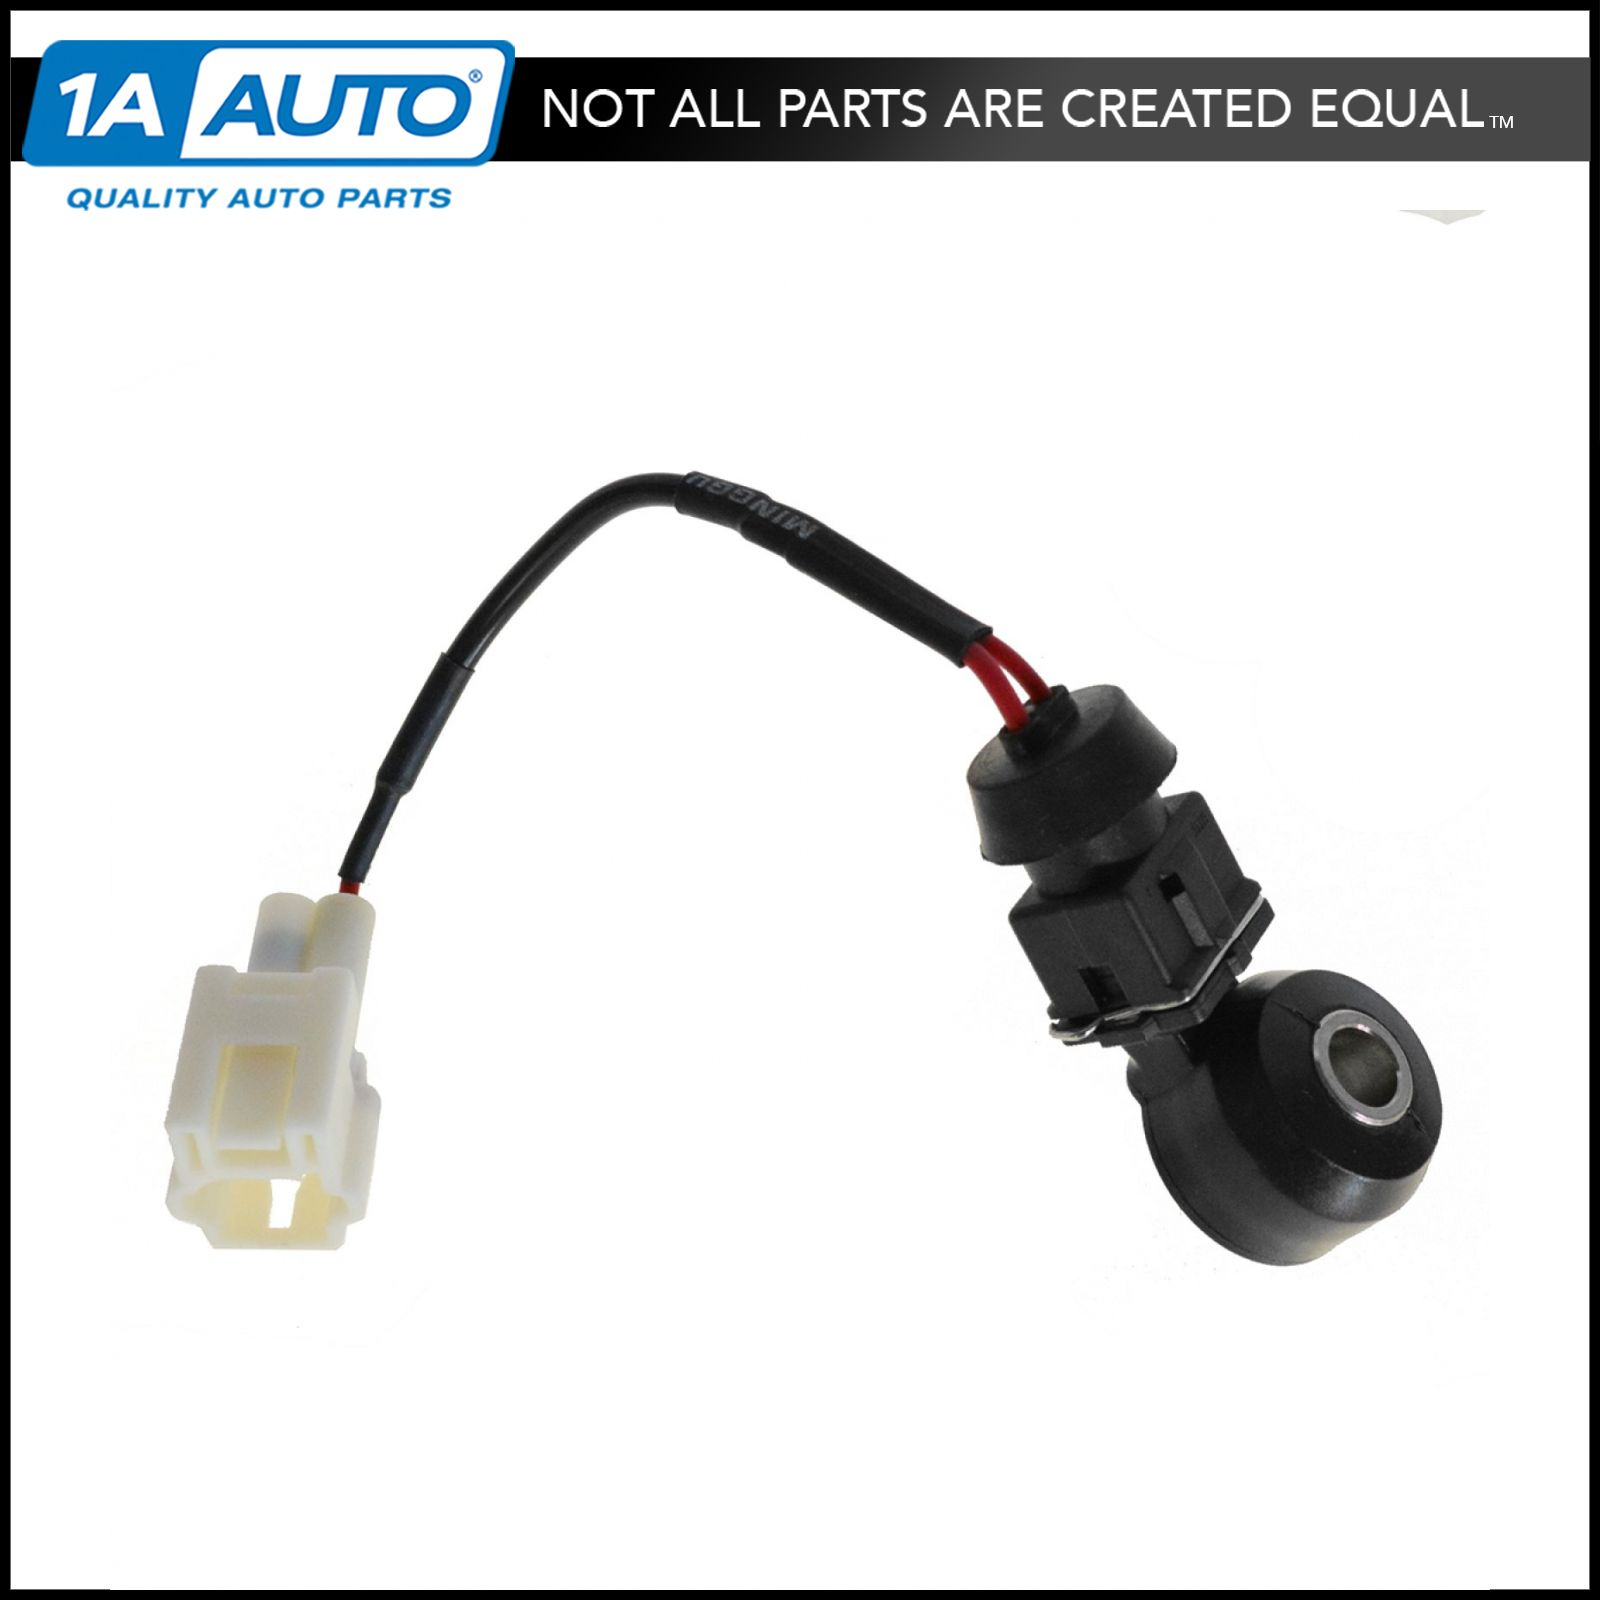 Engine Motor Knock Sensor for Subaru Forester Outback Impreza Legacy 2.2L 2.5L